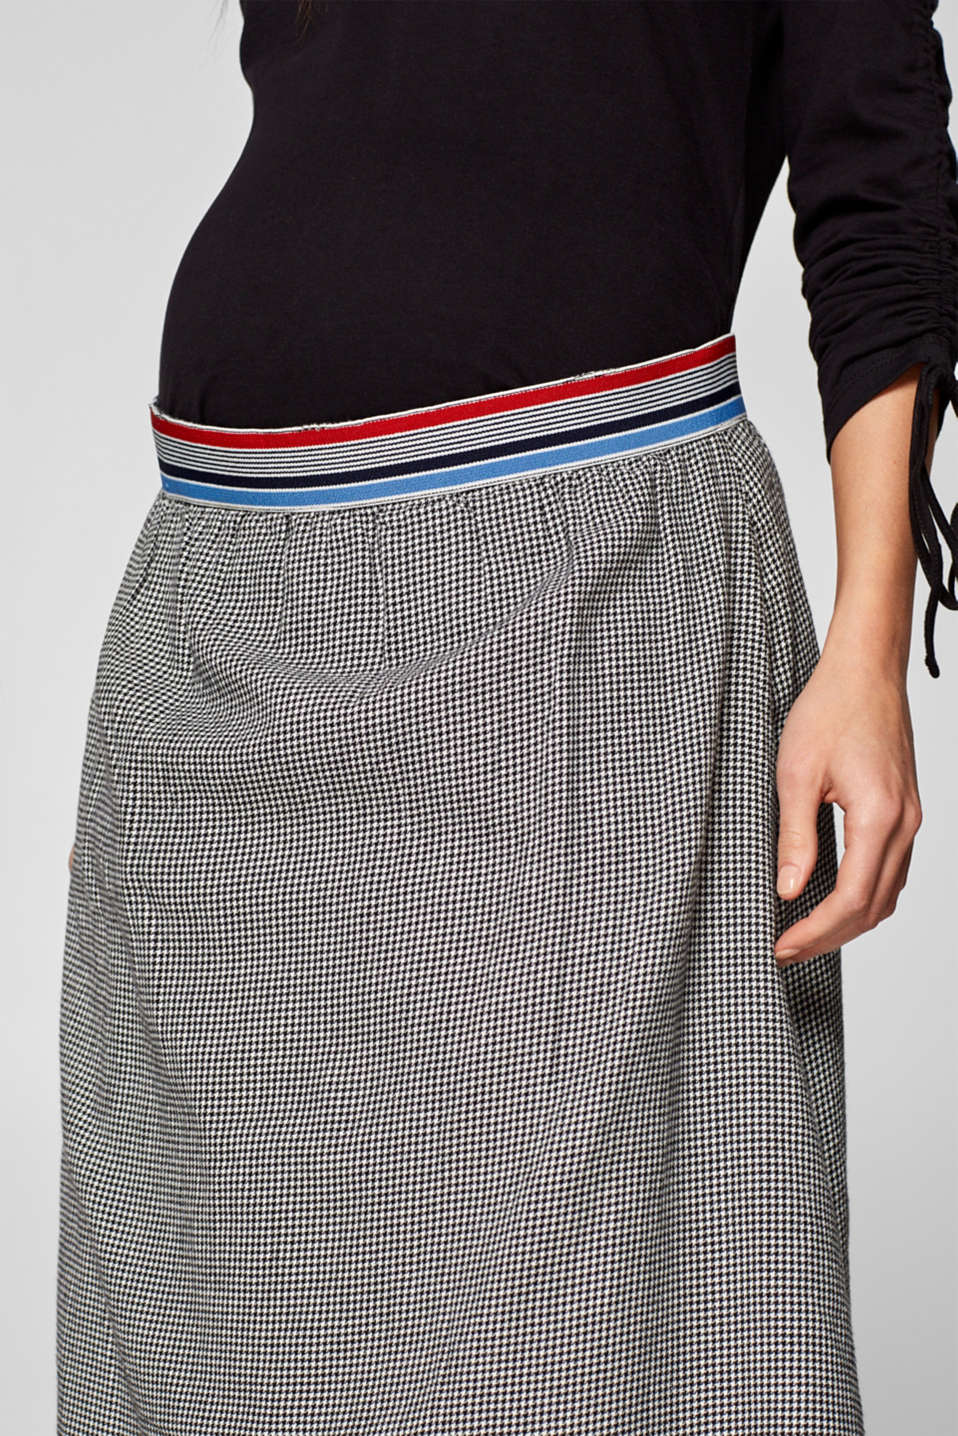 Skirts woven, LCBLACK, detail image number 1